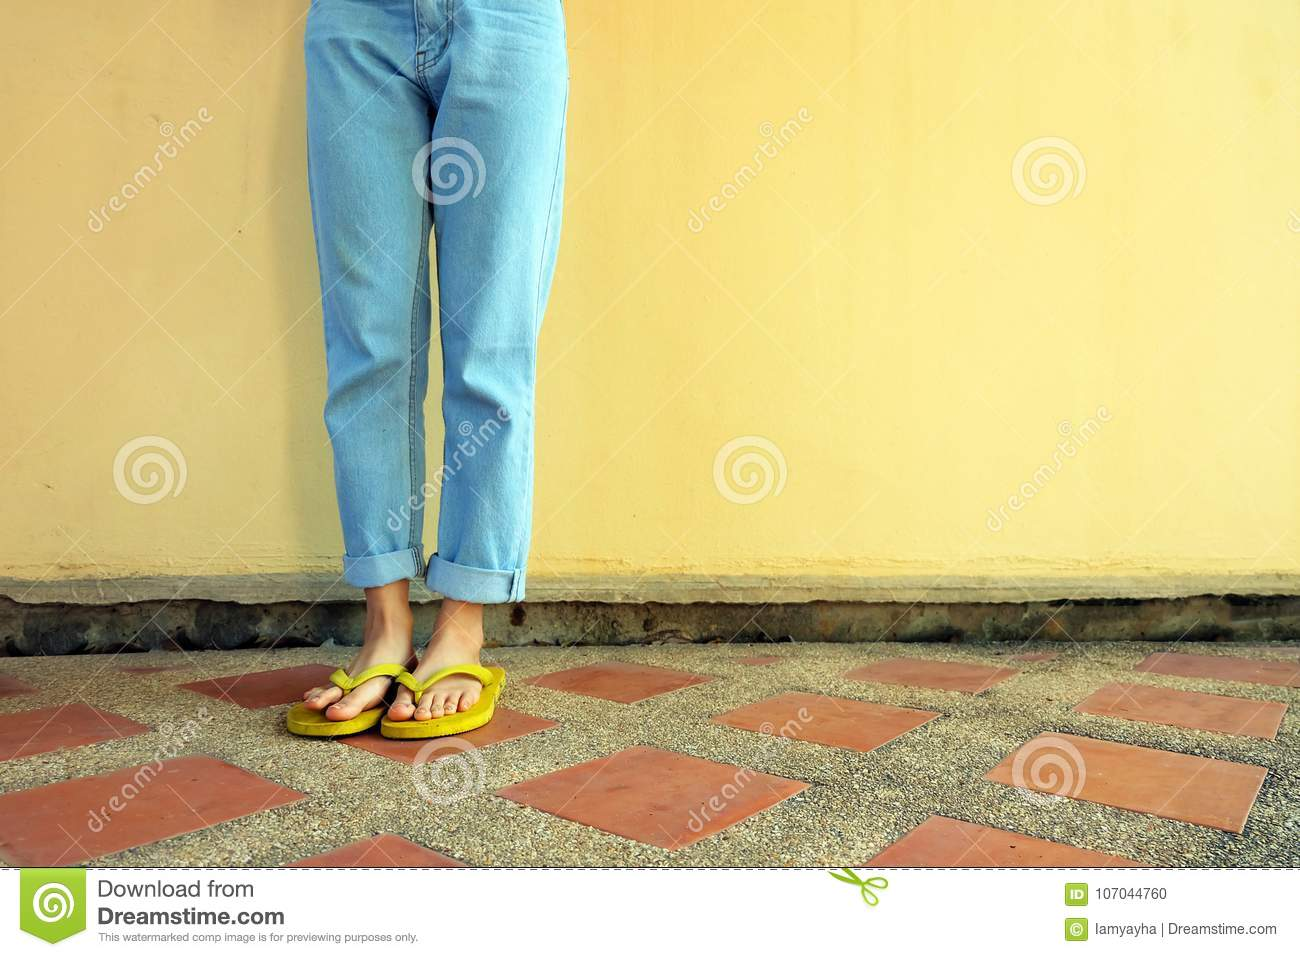 49b149d03184 Yellow Flip Flops. Female Wearing Sandals and Blue Jeans Standing on Tile  Floor